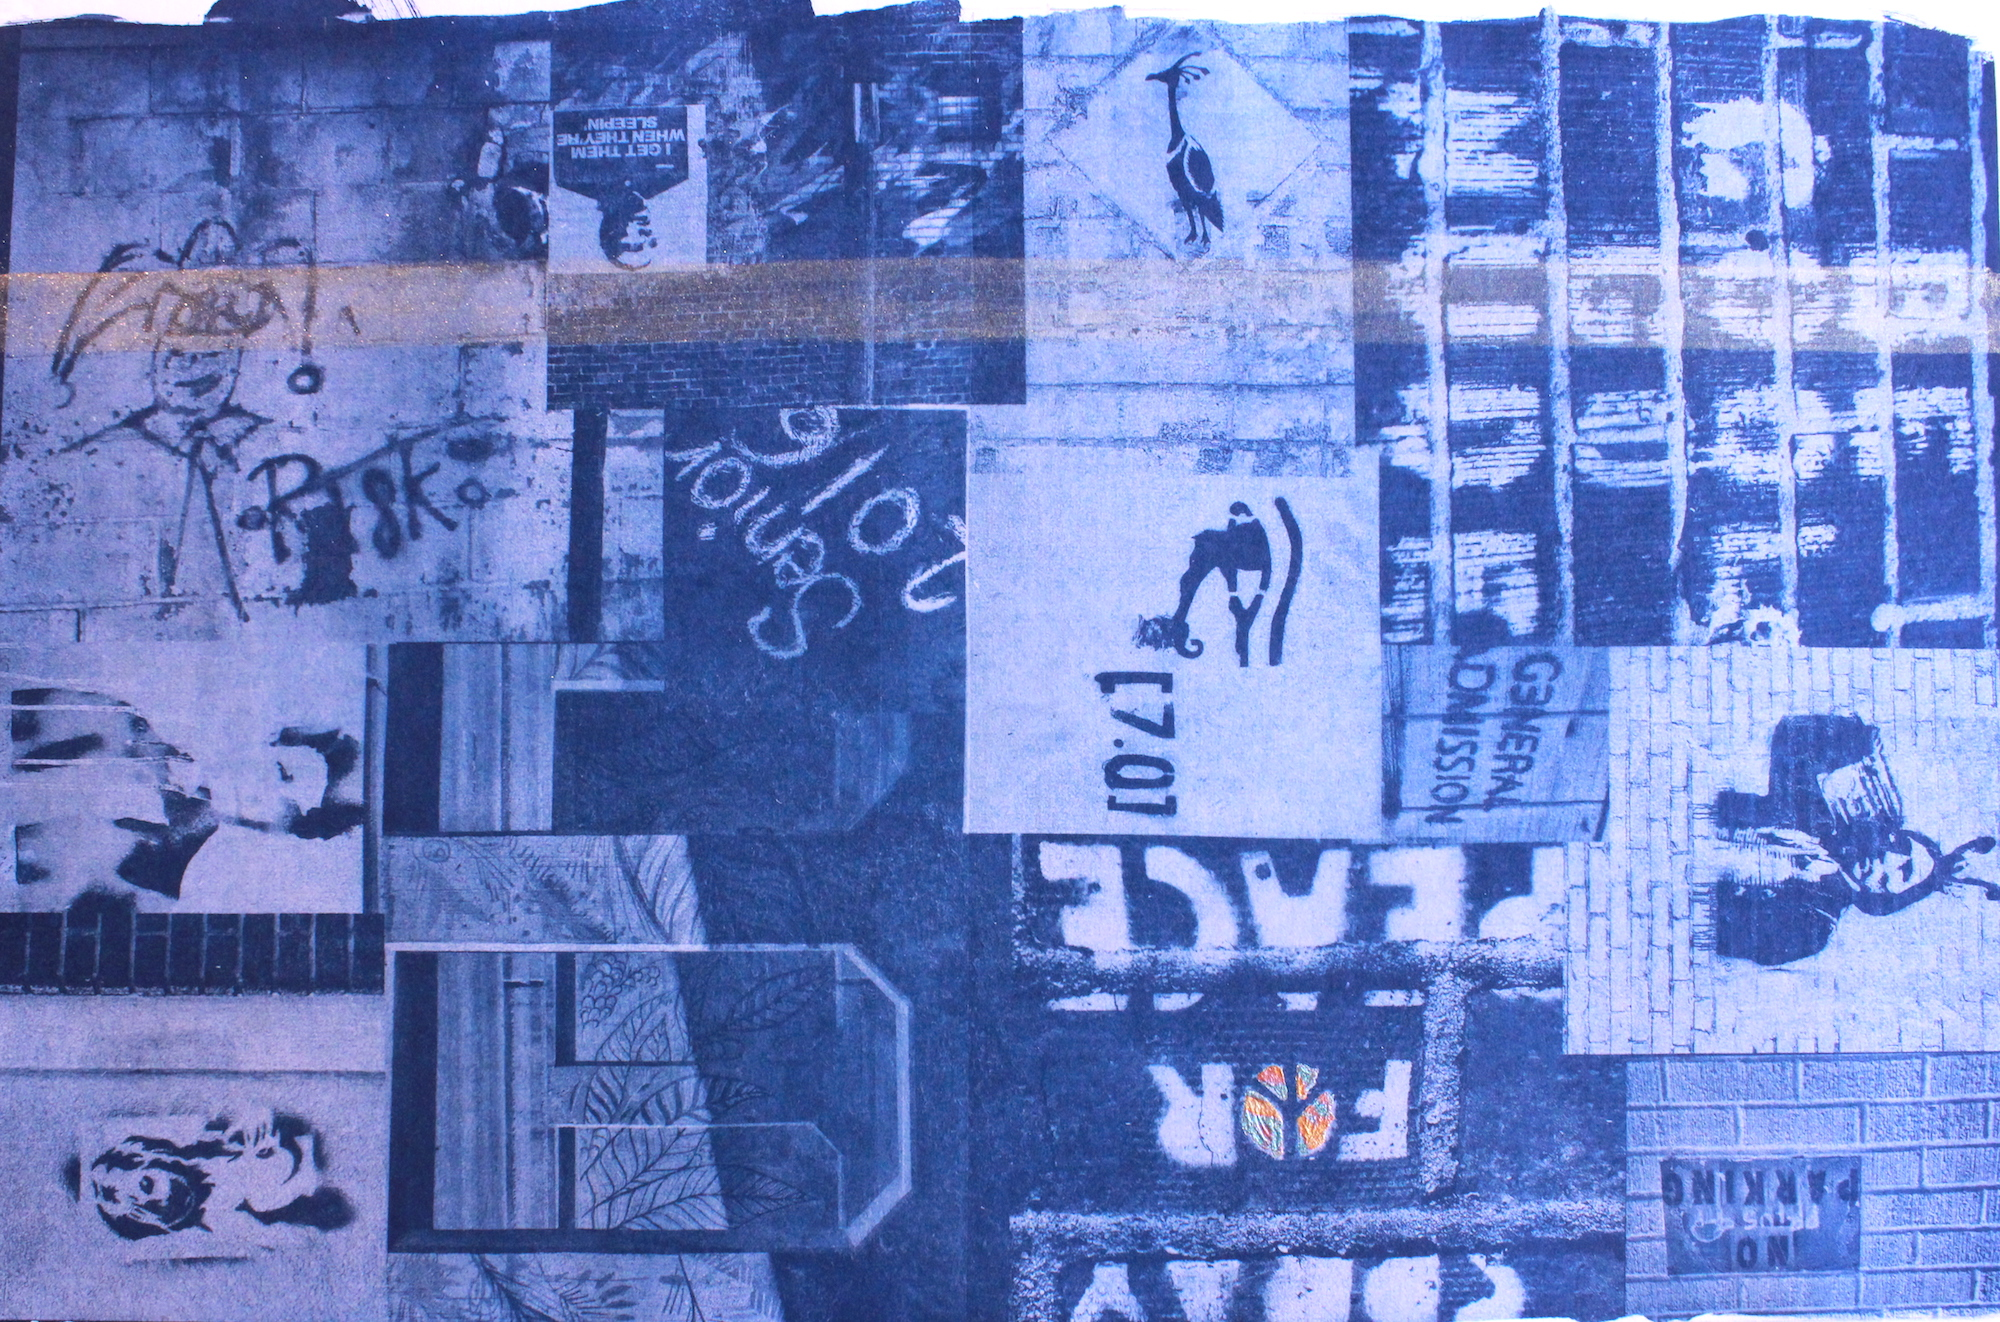 Oklahoma Printmaking Network Portfolio Exchange - Coordinated by Laurence ReeseMay 18th - June 10th